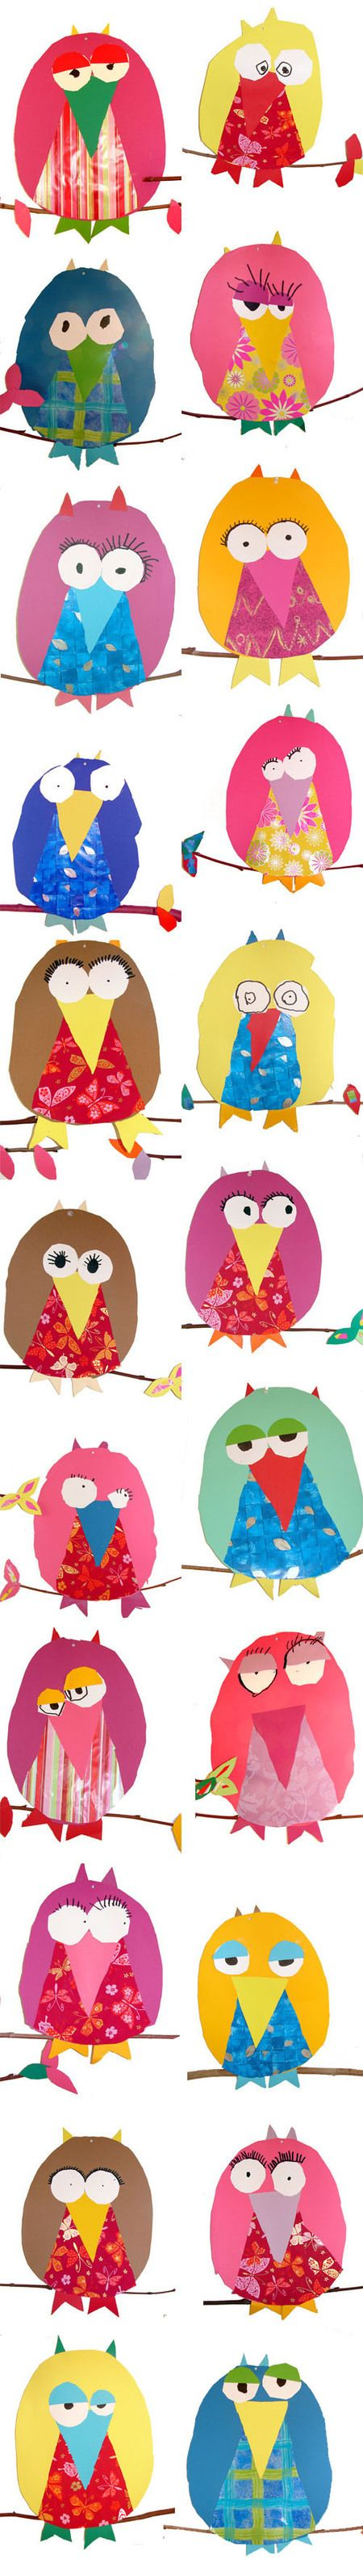 another fantastic owl/bird craft idea... or could use this an angry bird craft that leads to a writing activity on why the bird is so angry???